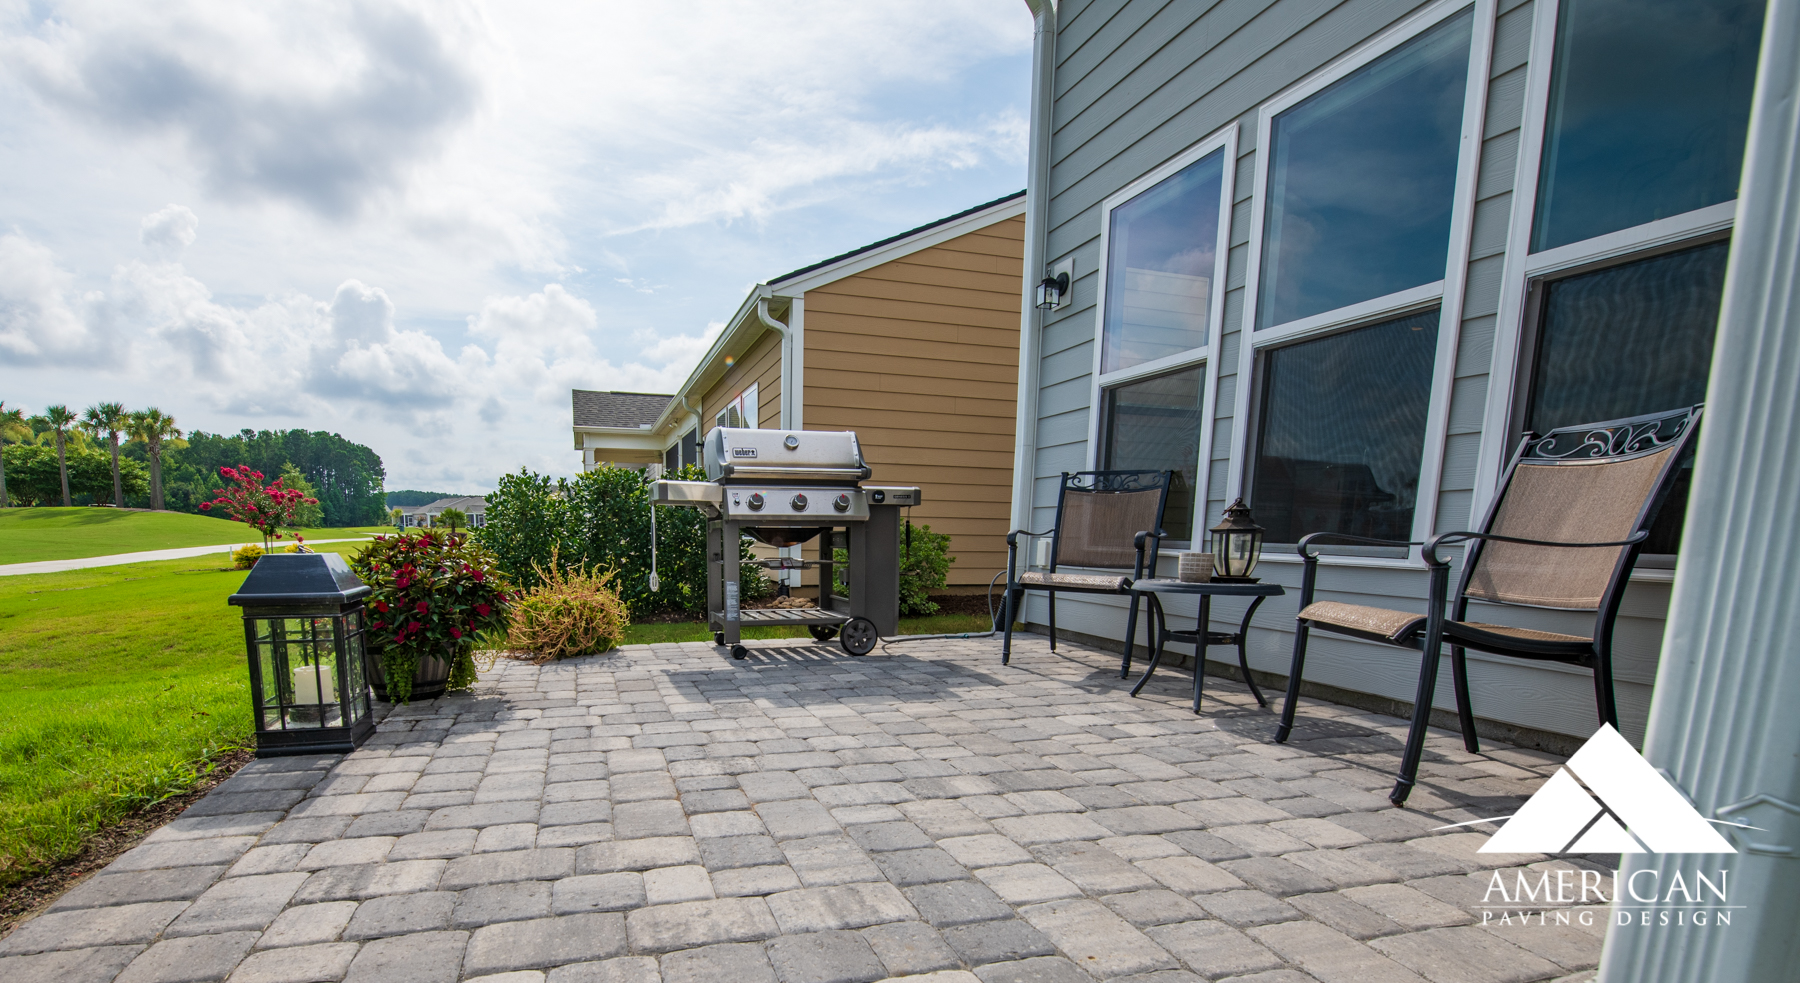 Is your patio relaxation ready? If not, call our team and start designing your perfect space!